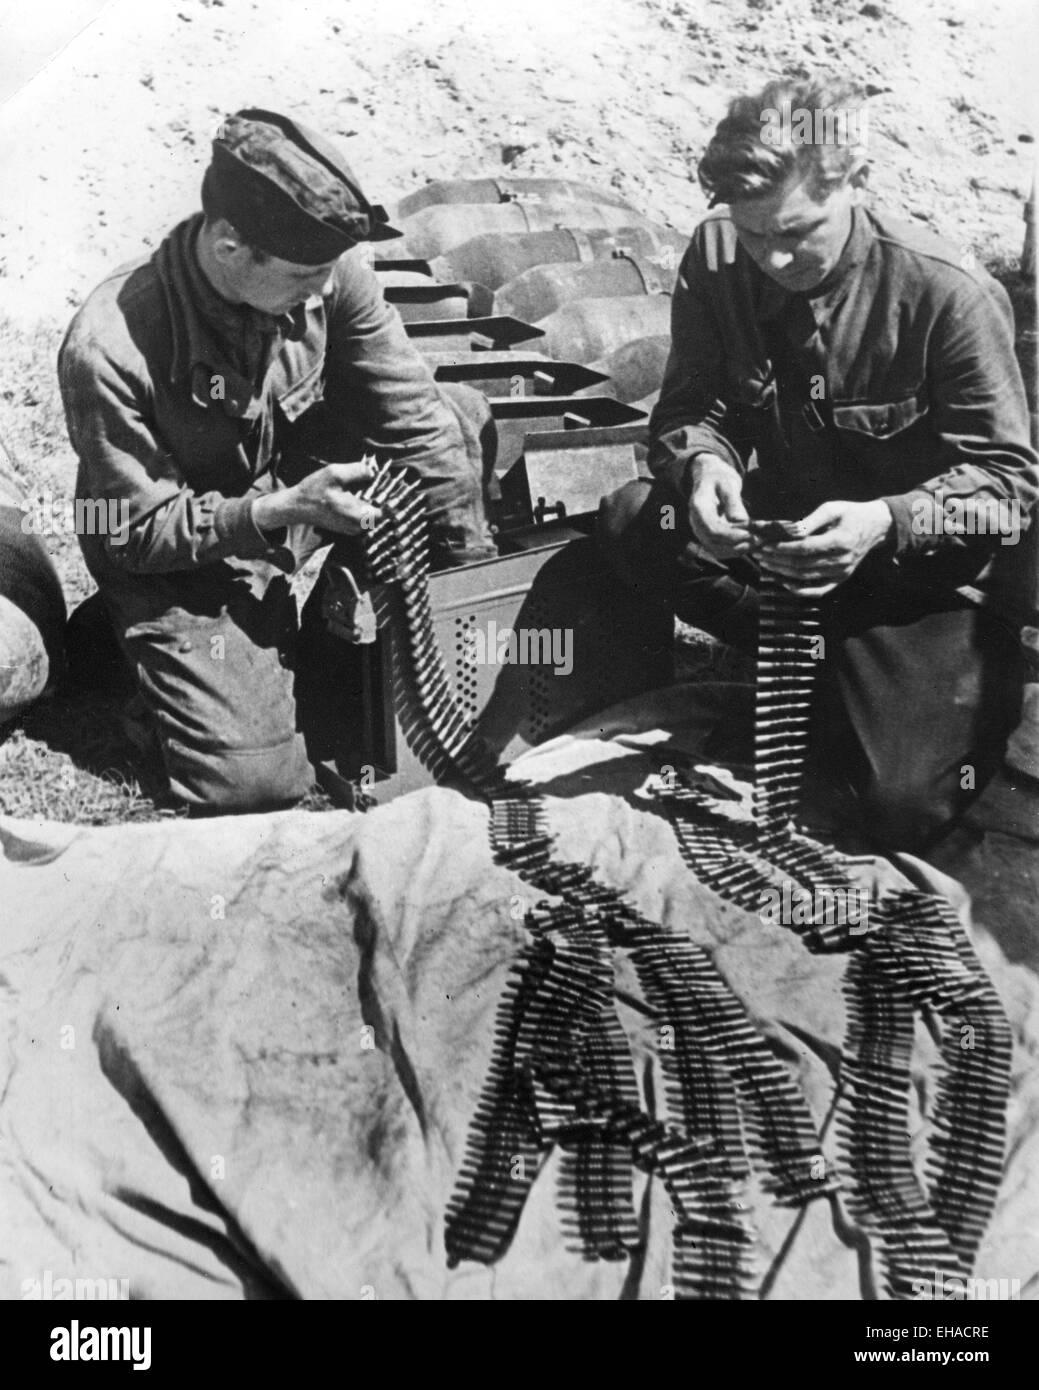 SOVIET AIRFORCE mechanics preparing ammunition and bombs about 1943 - Stock Image